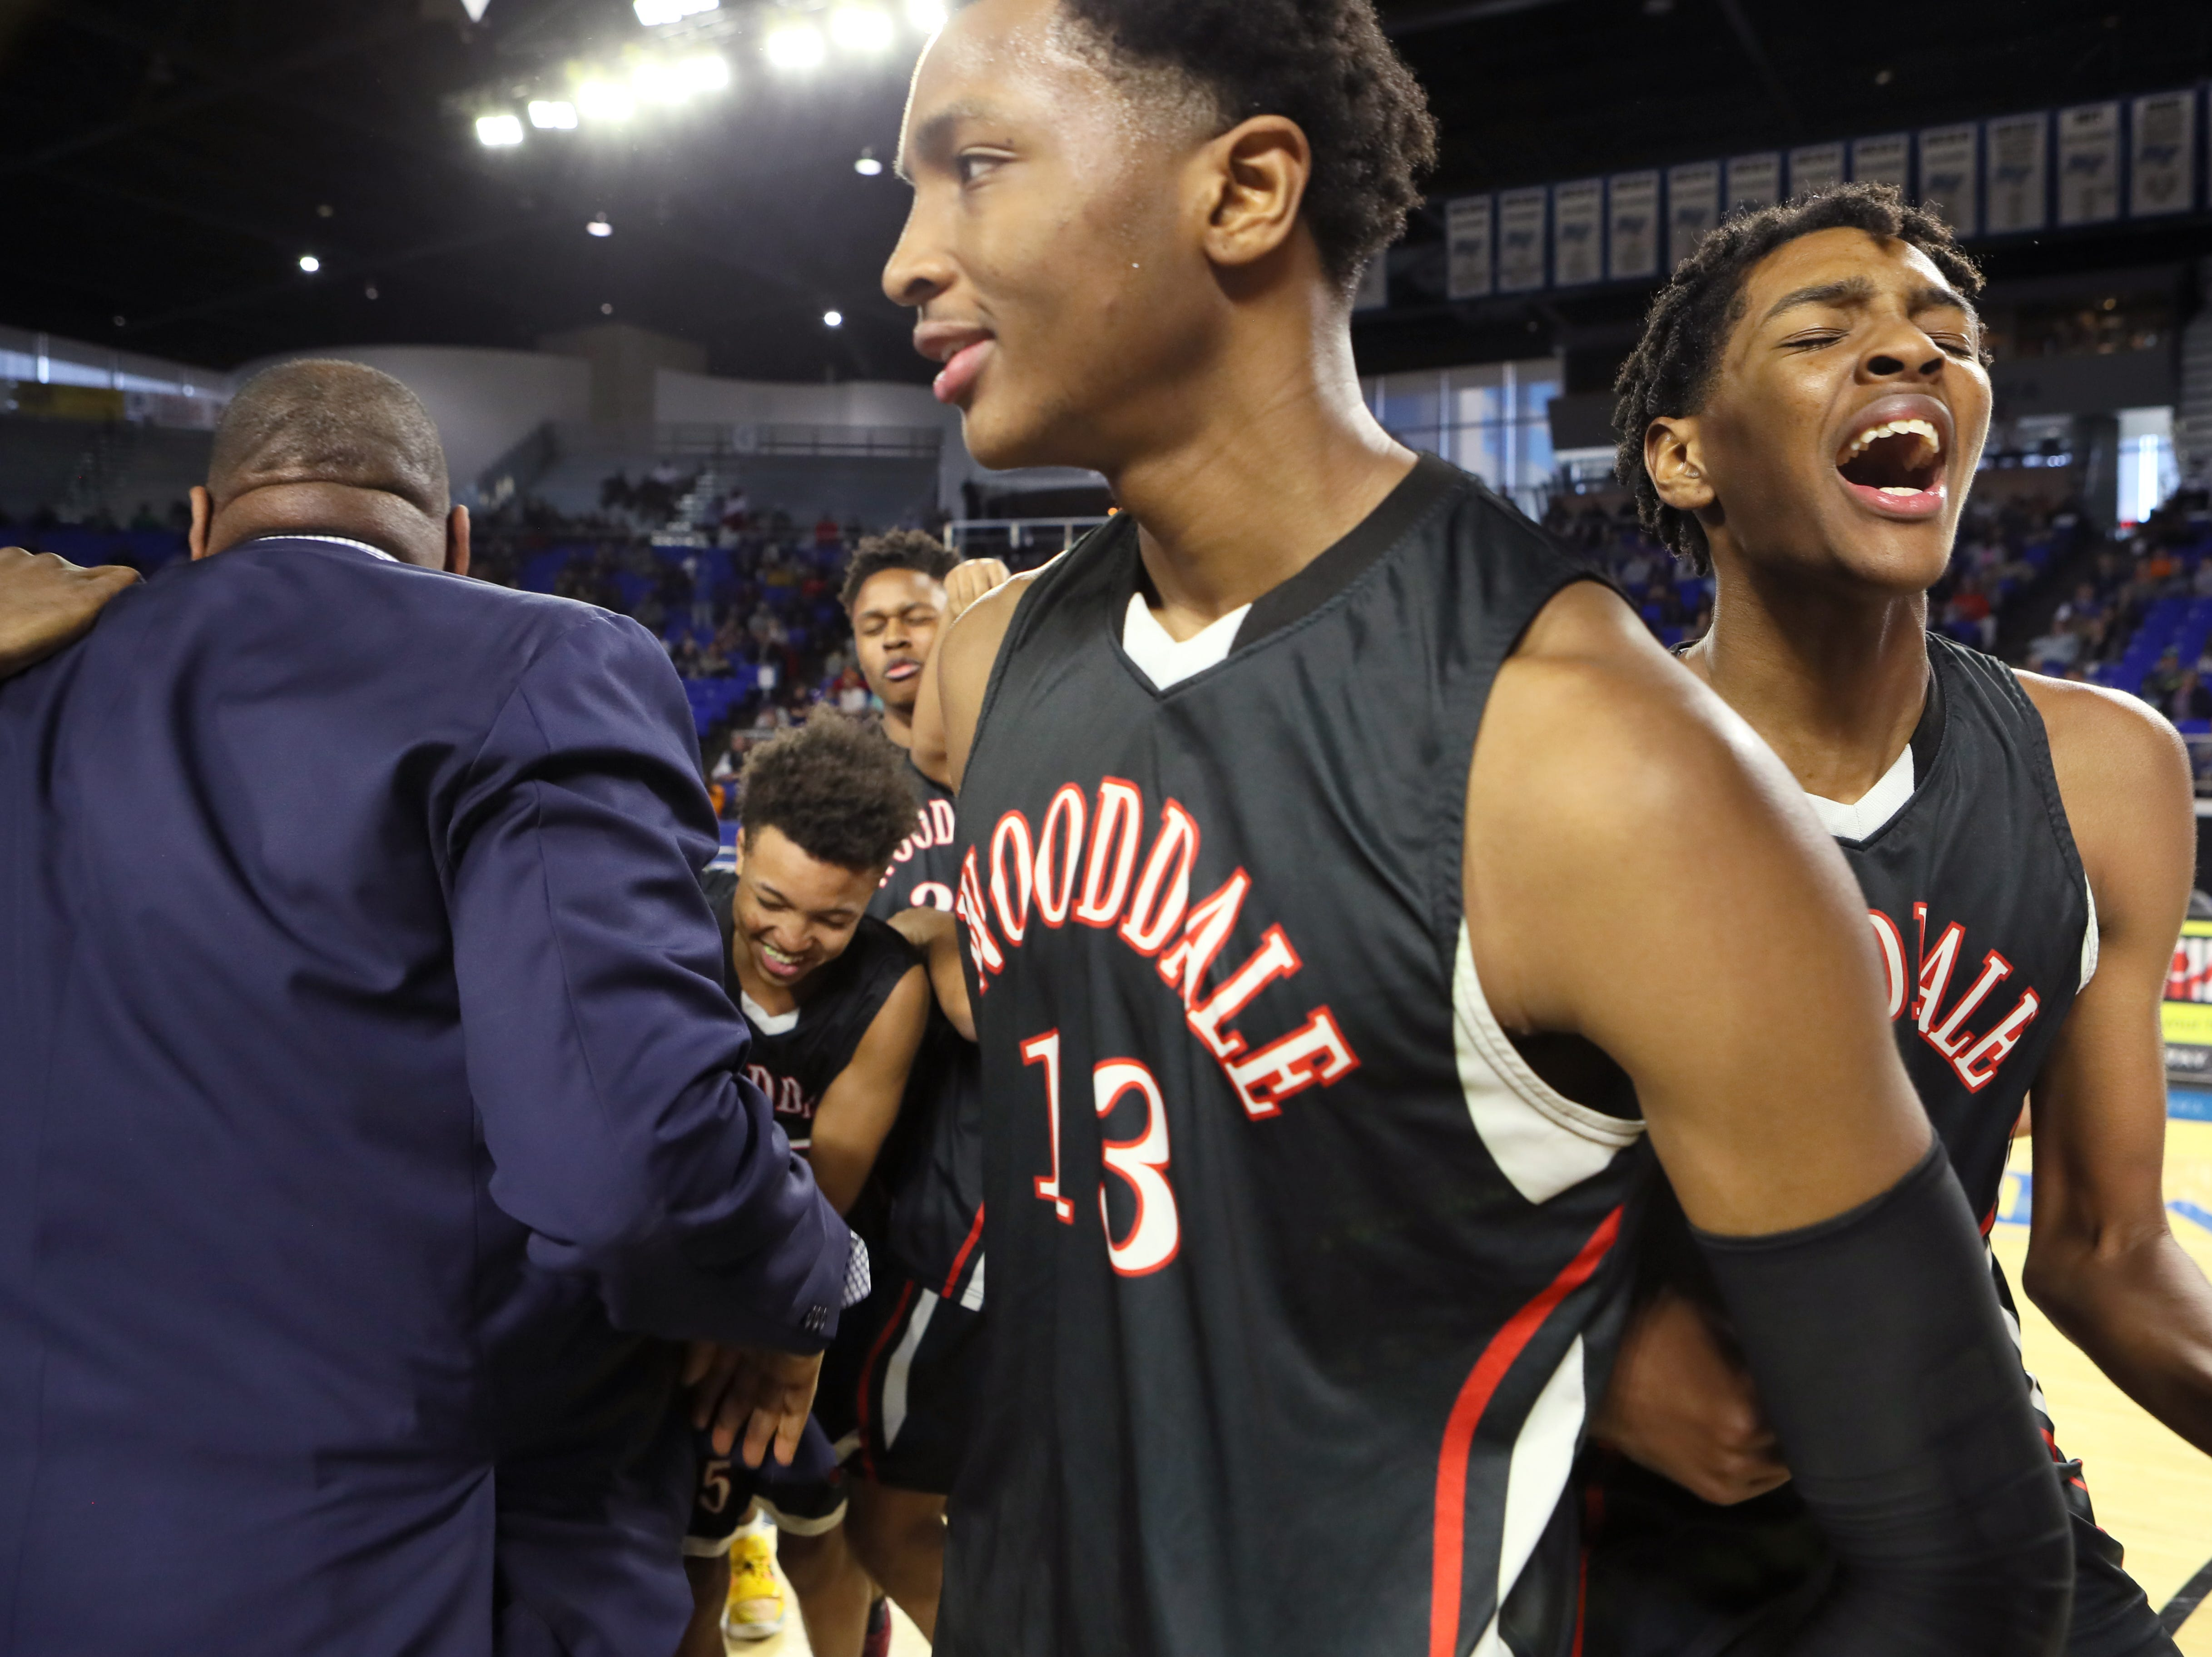 Wooddale's Chandler Lawson center, his brother Johnathan Lawson celebrate their 59-46 win over Fulton for the Class AA boys basketball state championship at the Murphy Center in Murfreesboro, Tenn. on Saturday, March 16, 2019.